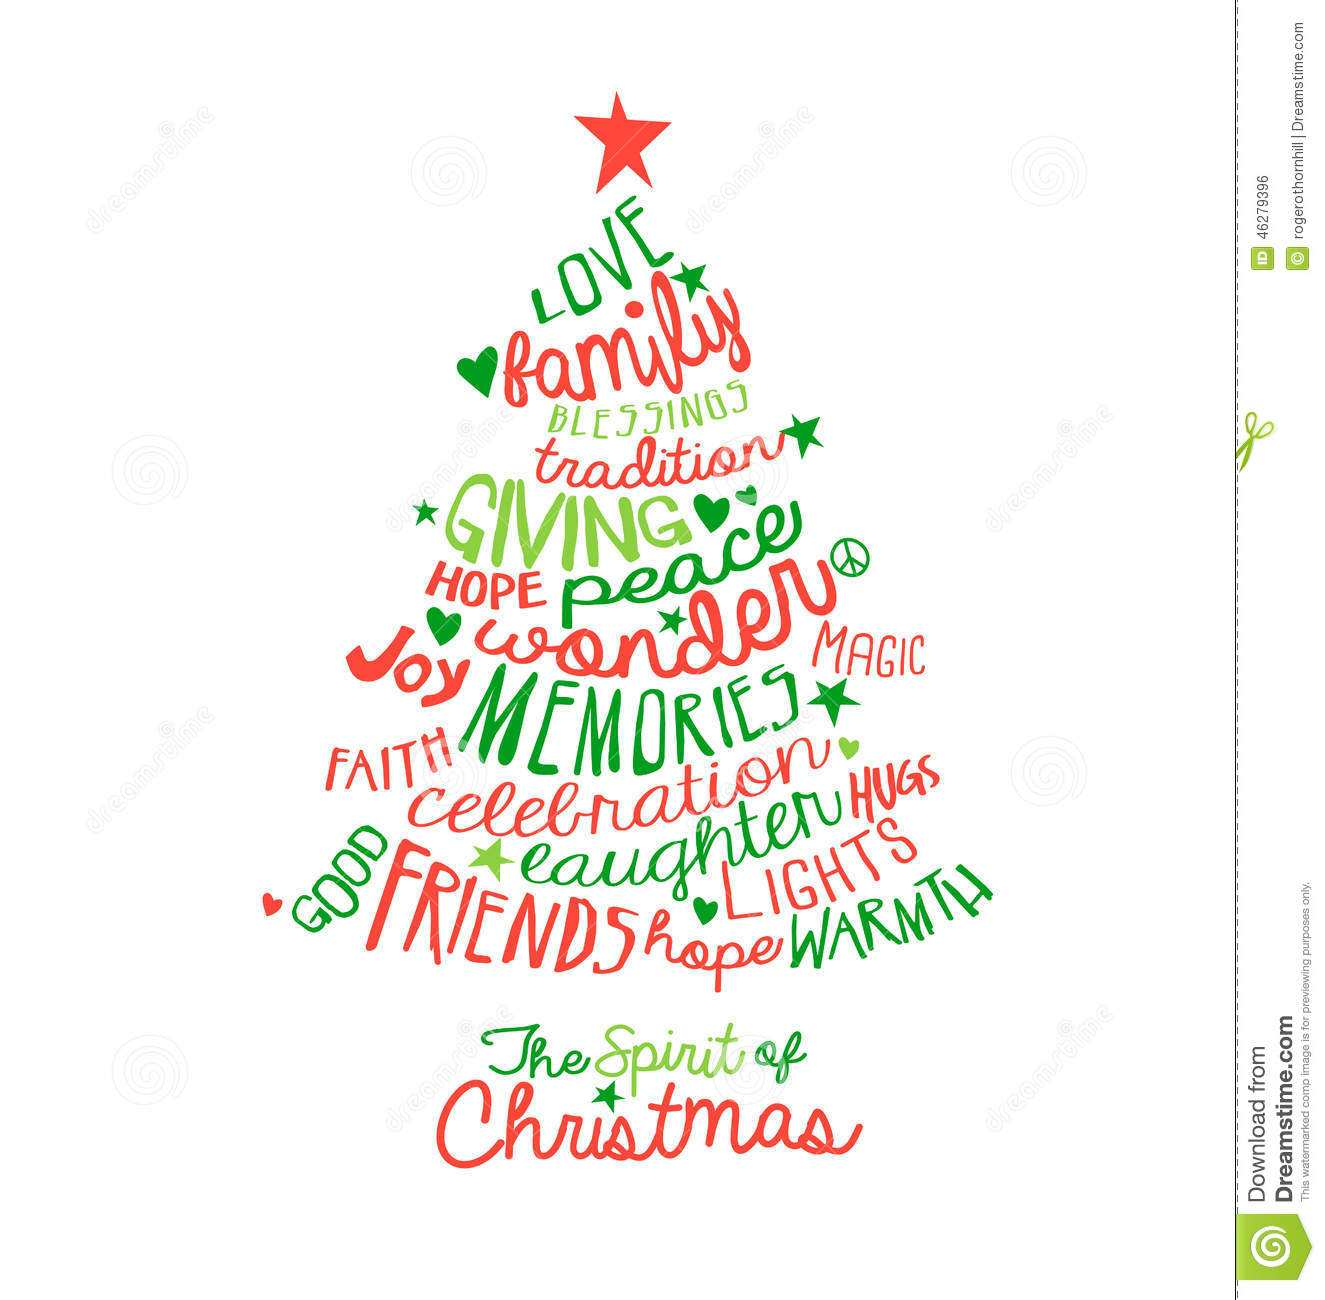 33 Online Christmas Card Template On Word Maker With Christmas Card Template On Word Cards Design Templates